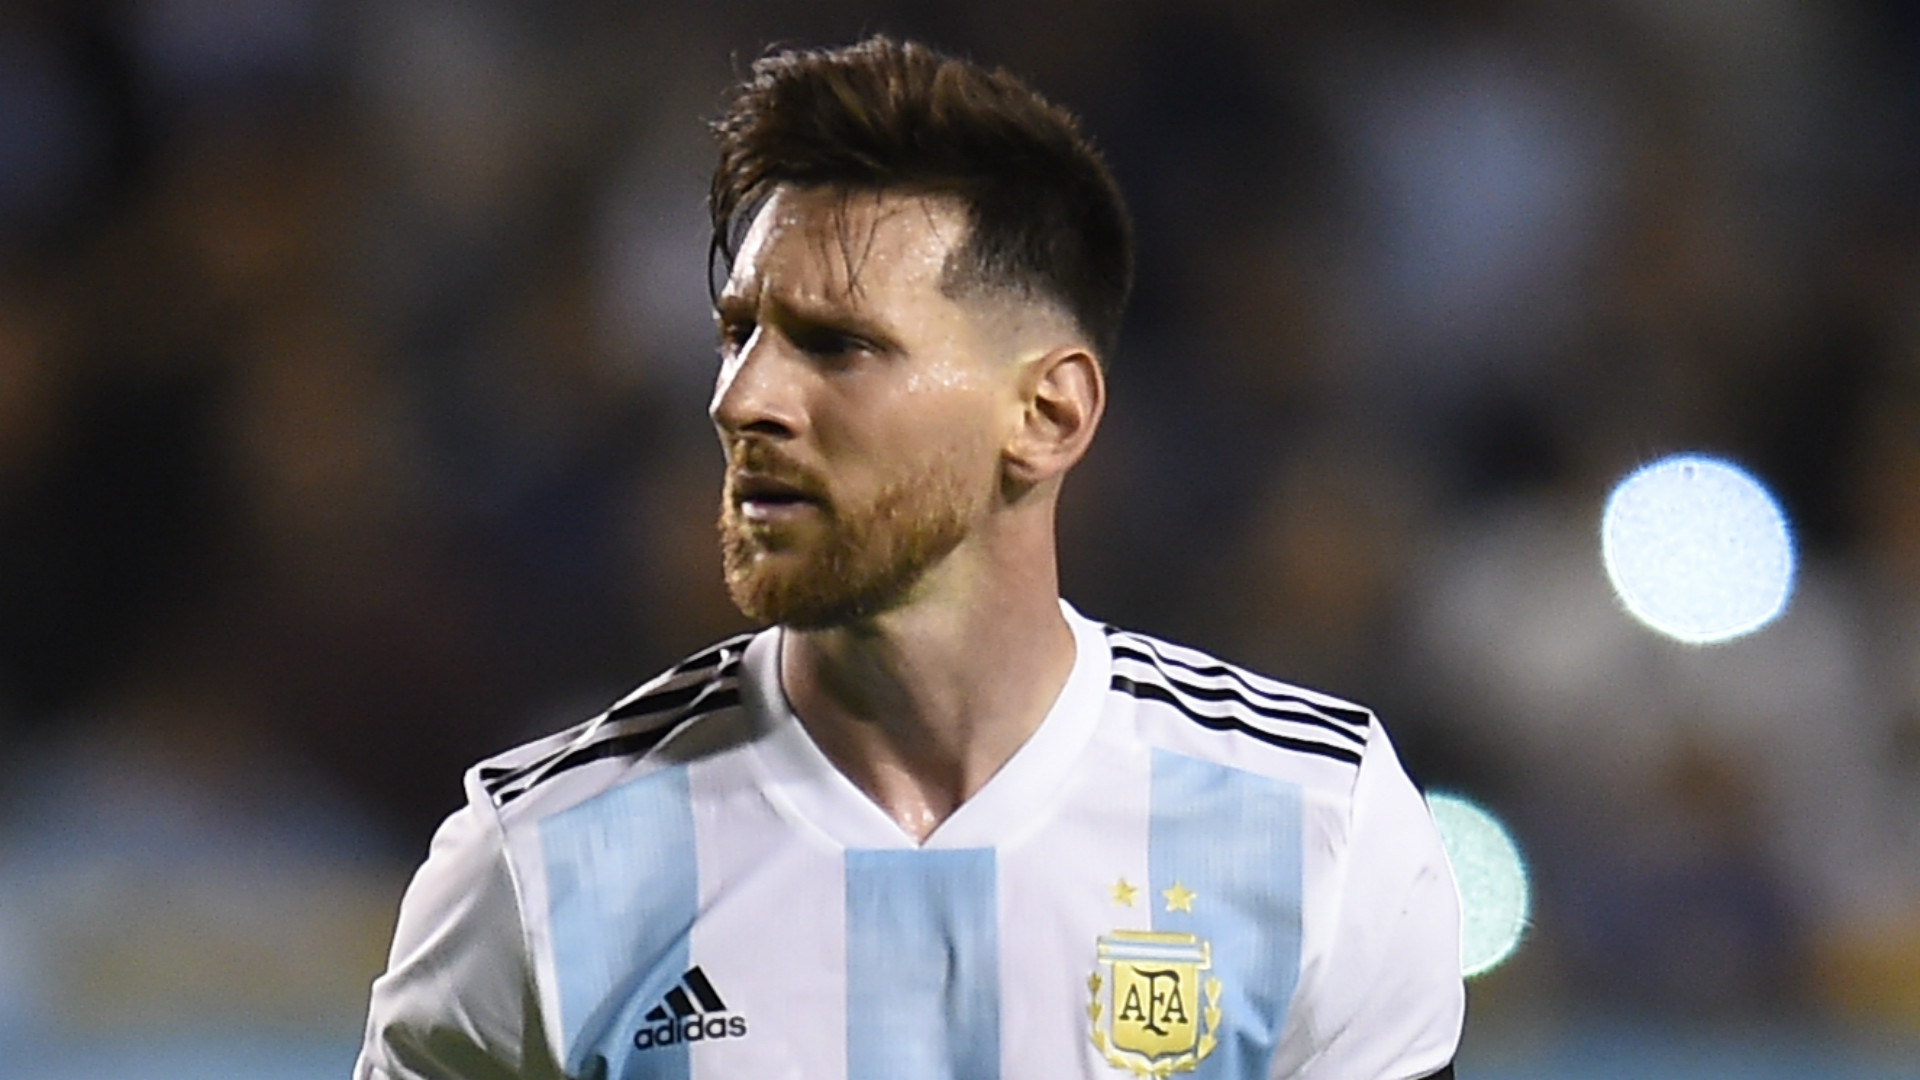 Argentina friendly with Israel to be scrapped